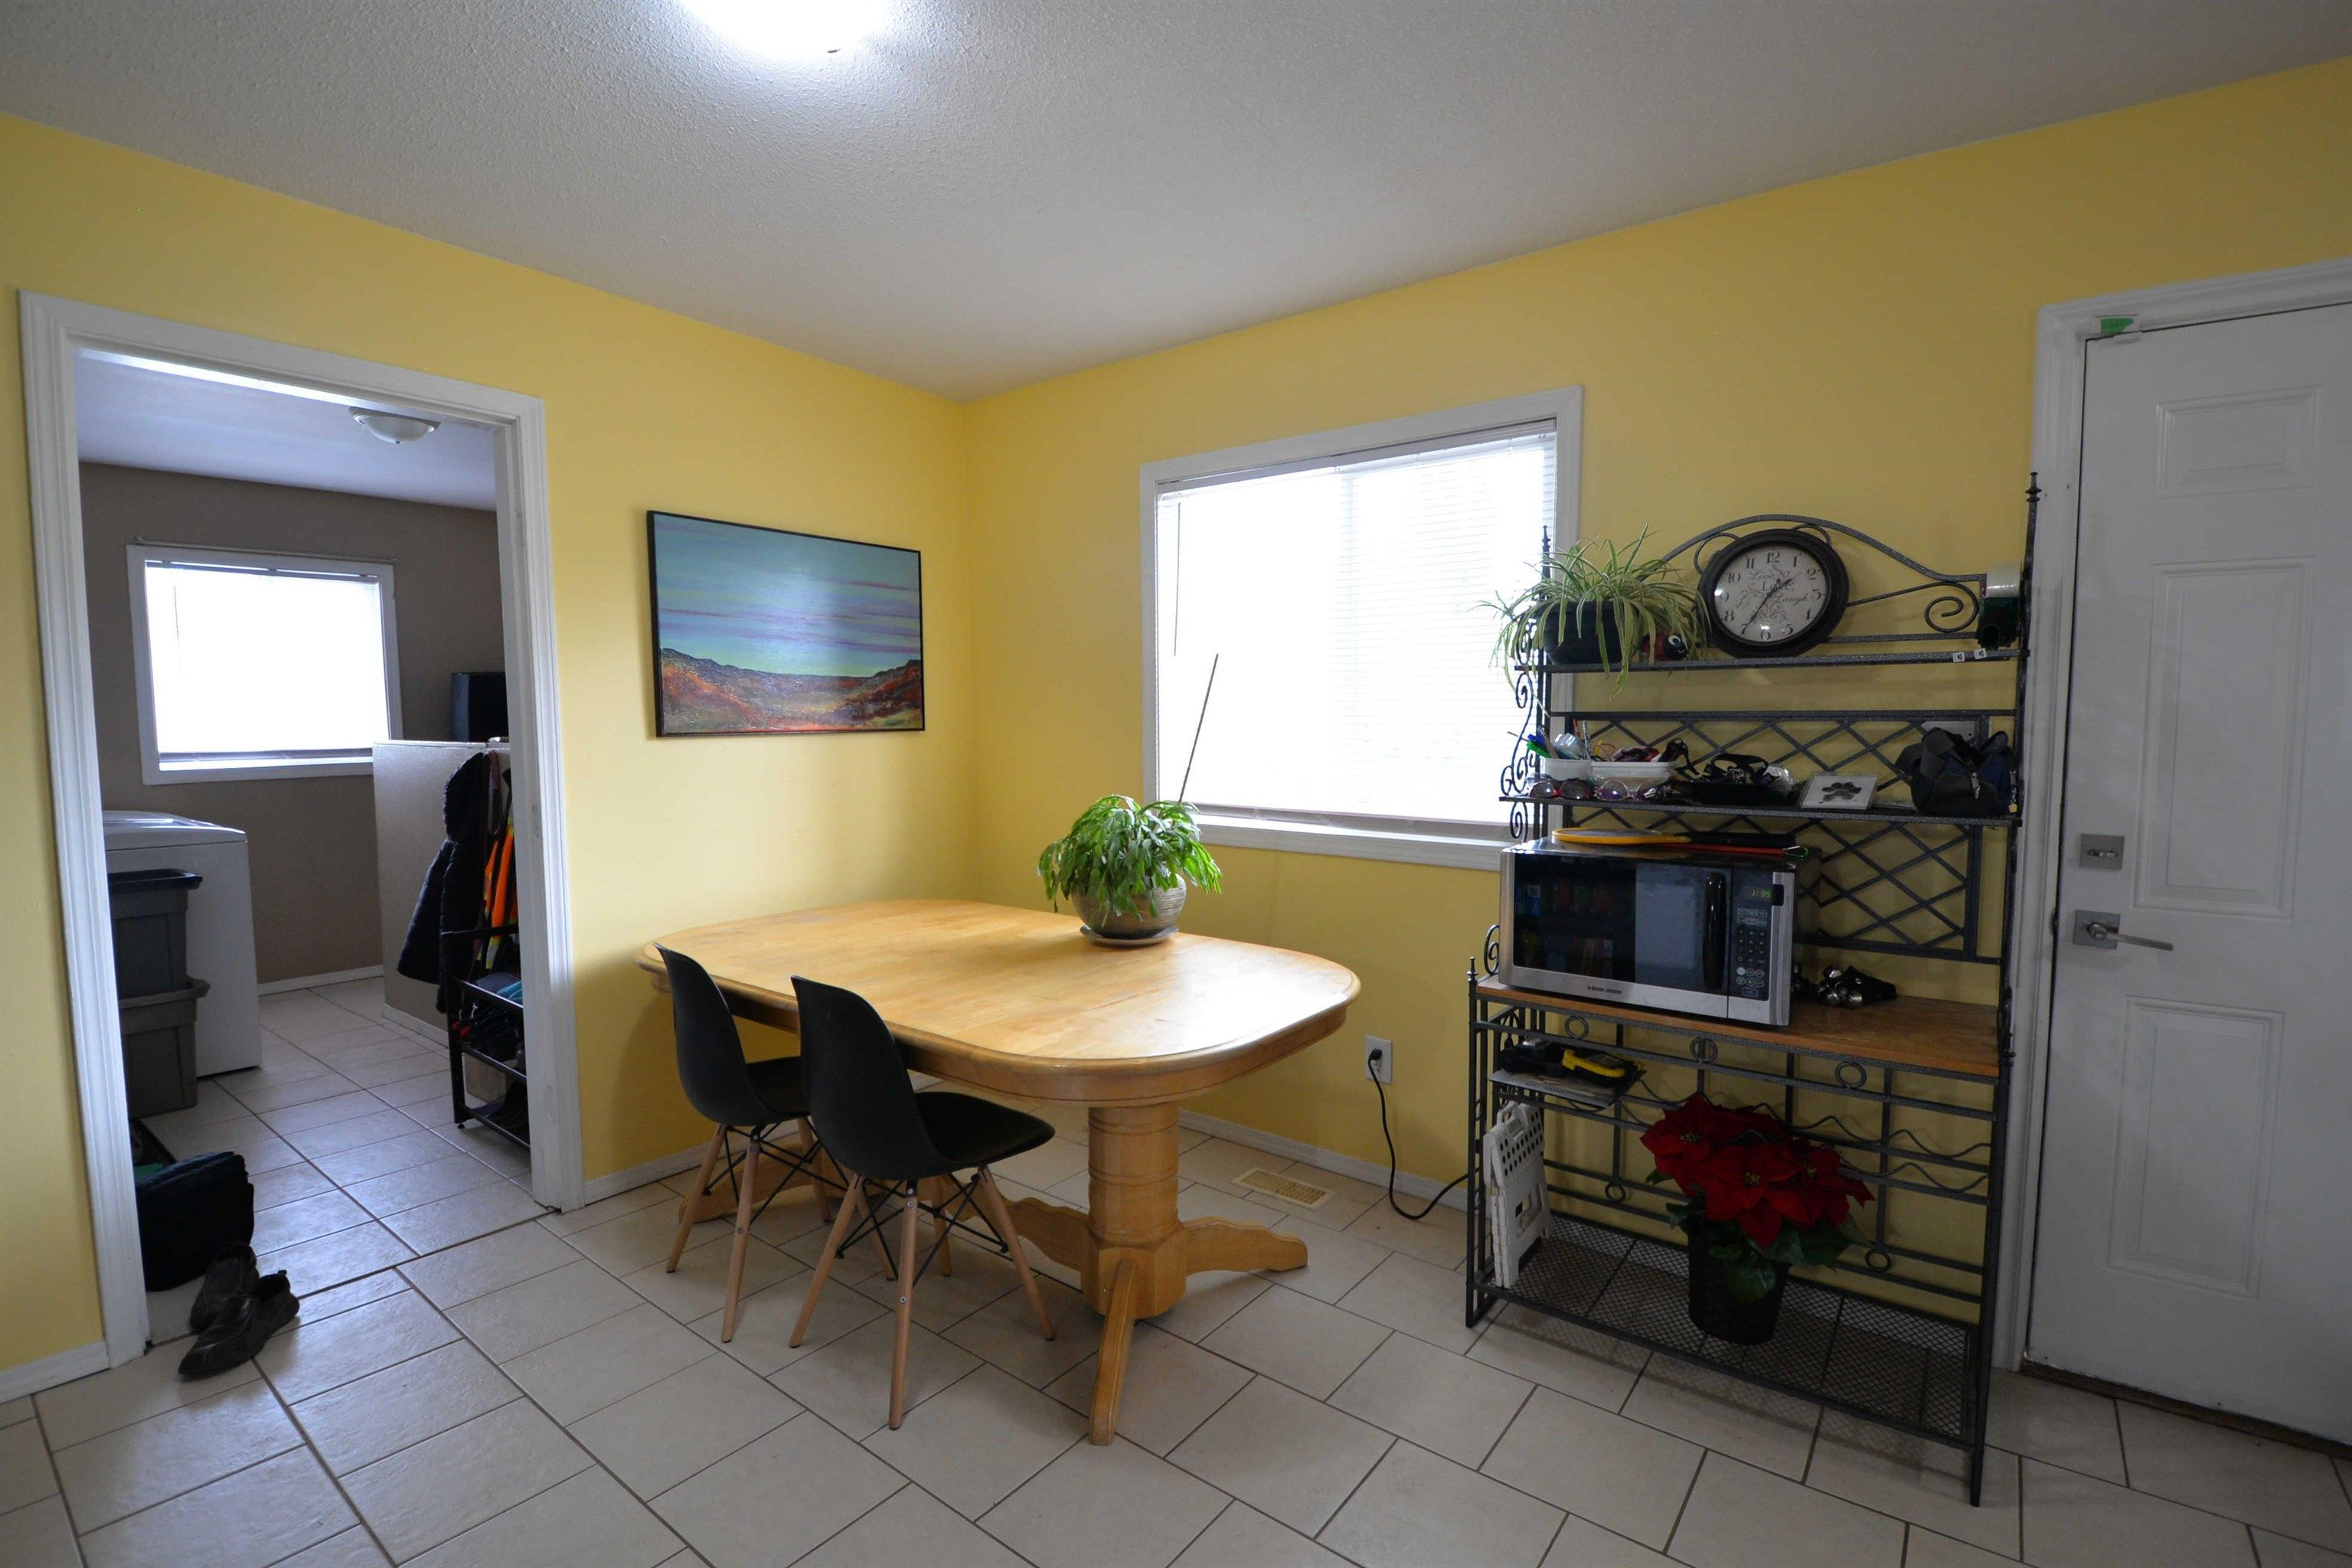 """Photo 5: Photos: 2306 OAK Street in Prince George: VLA House for sale in """"VLA"""" (PG City Central (Zone 72))  : MLS®# R2615261"""